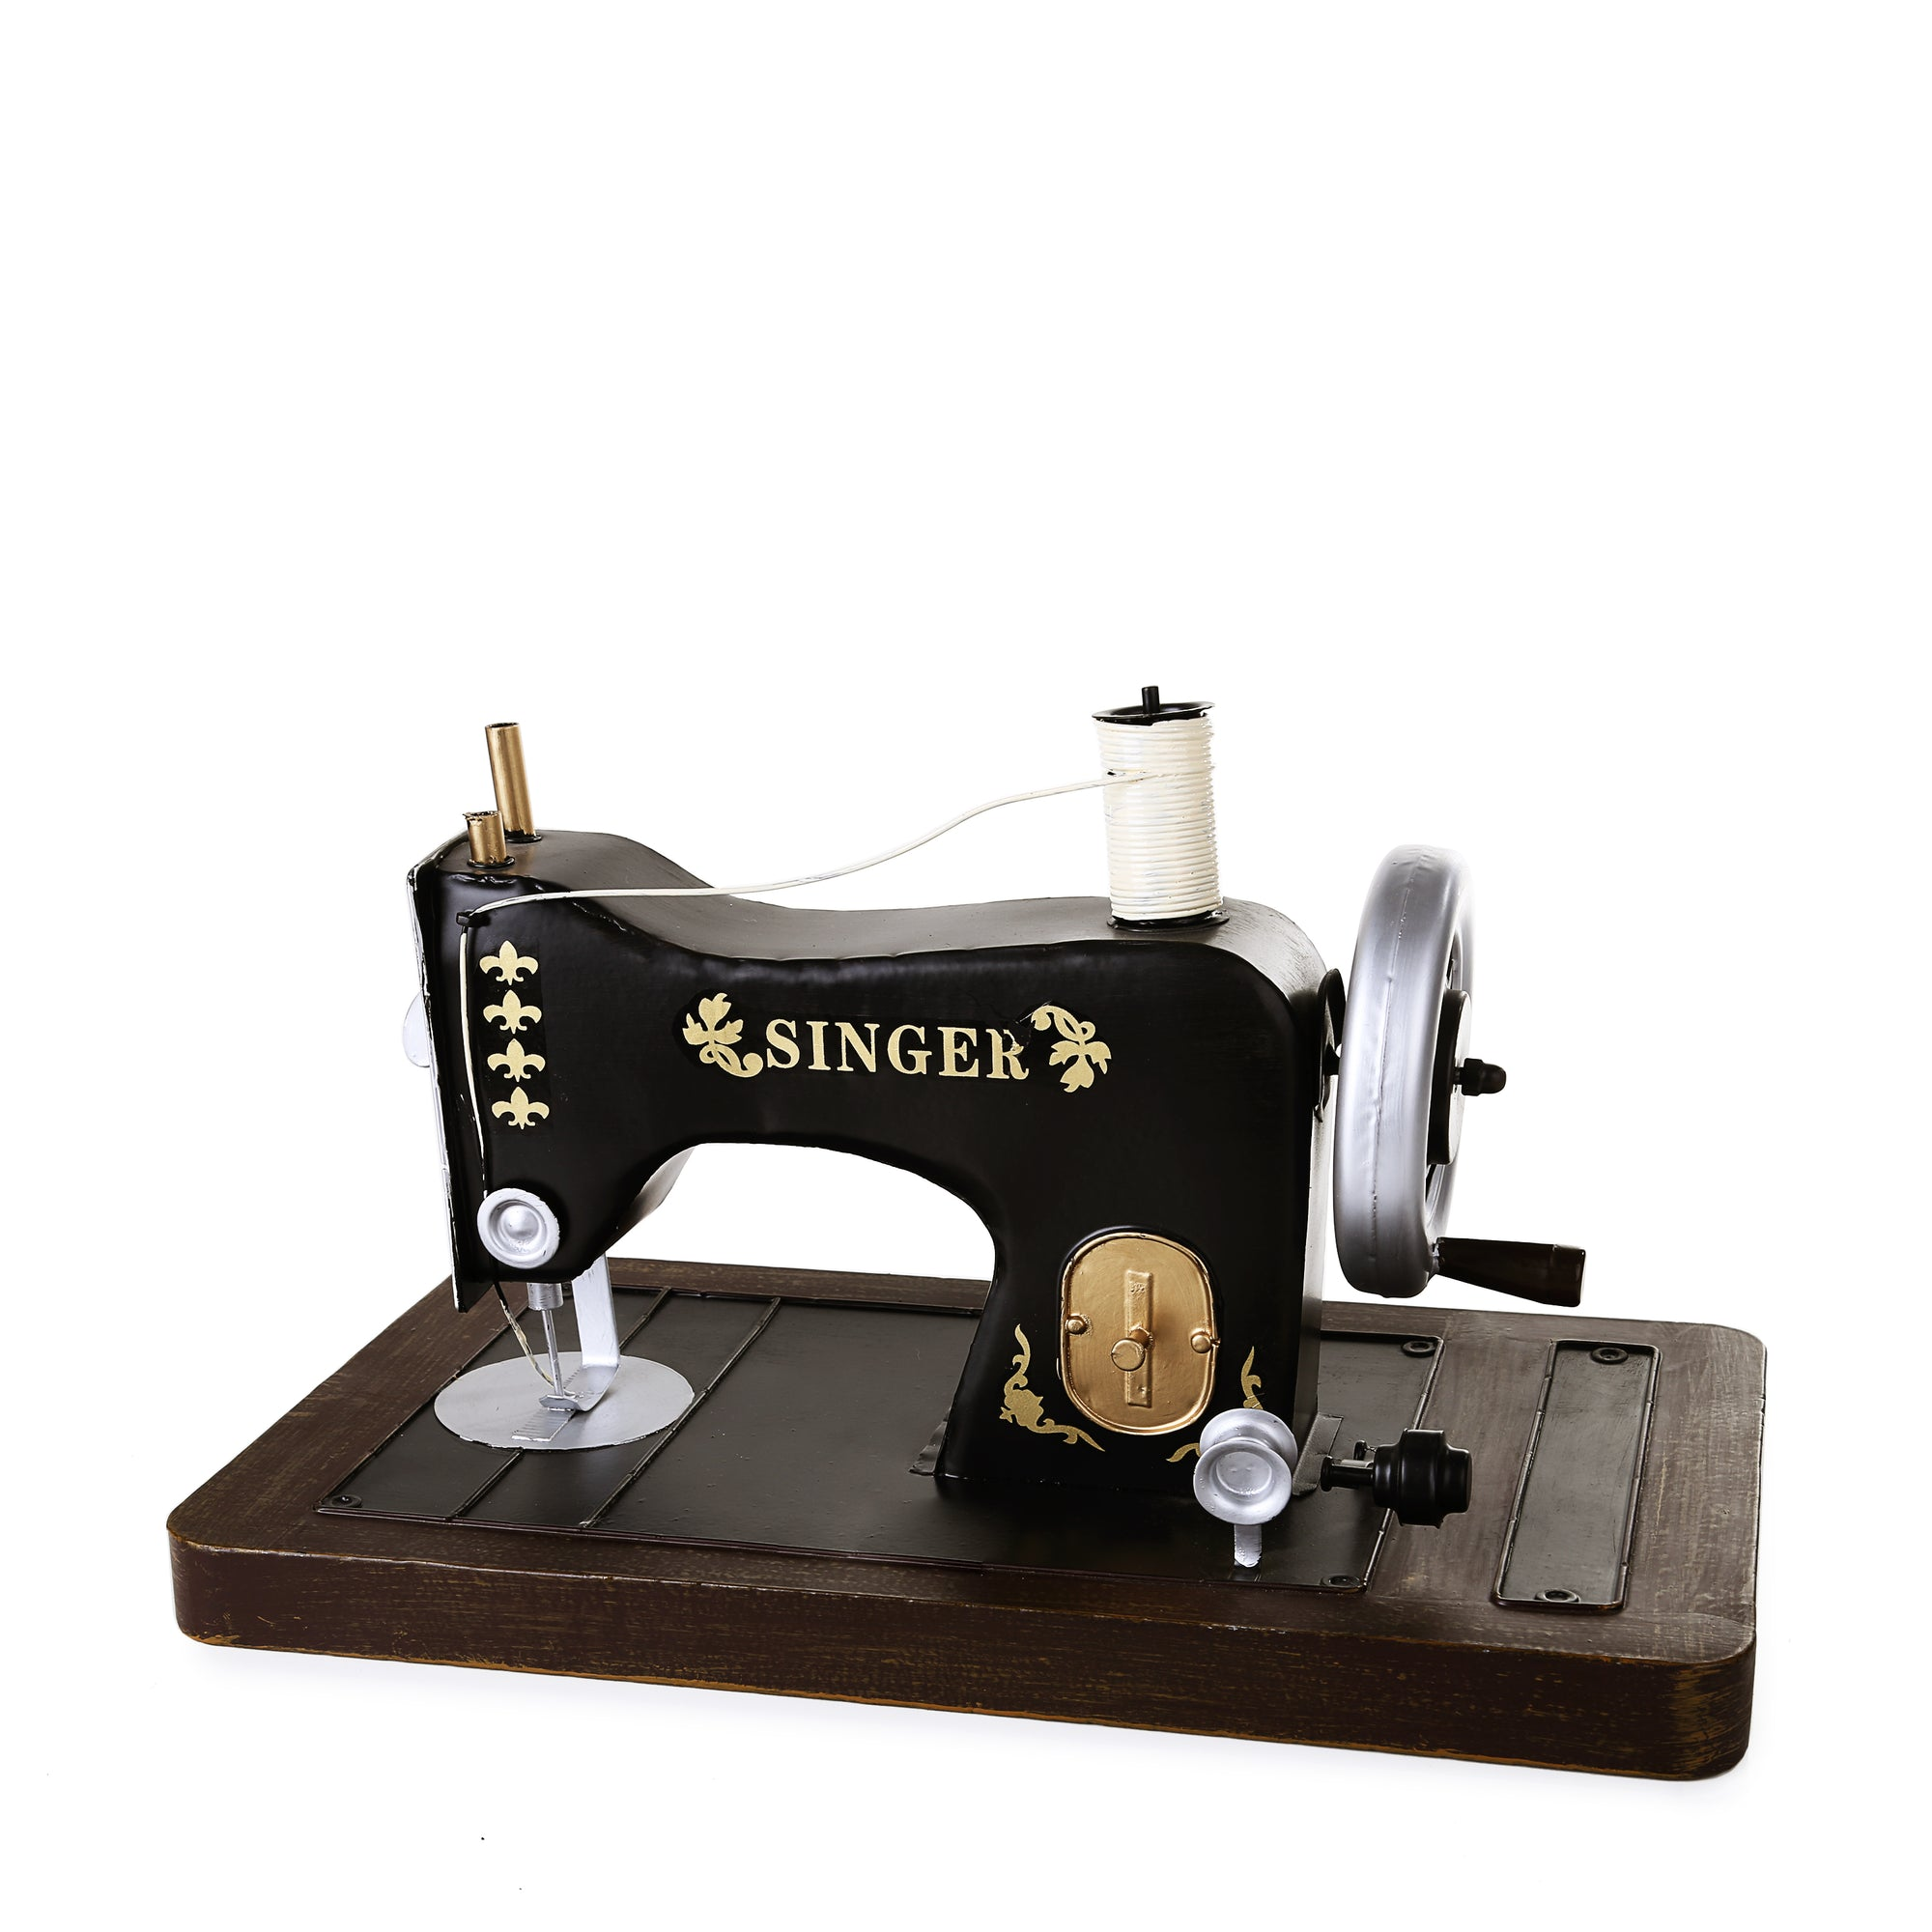 Singer Sewing Machine Model